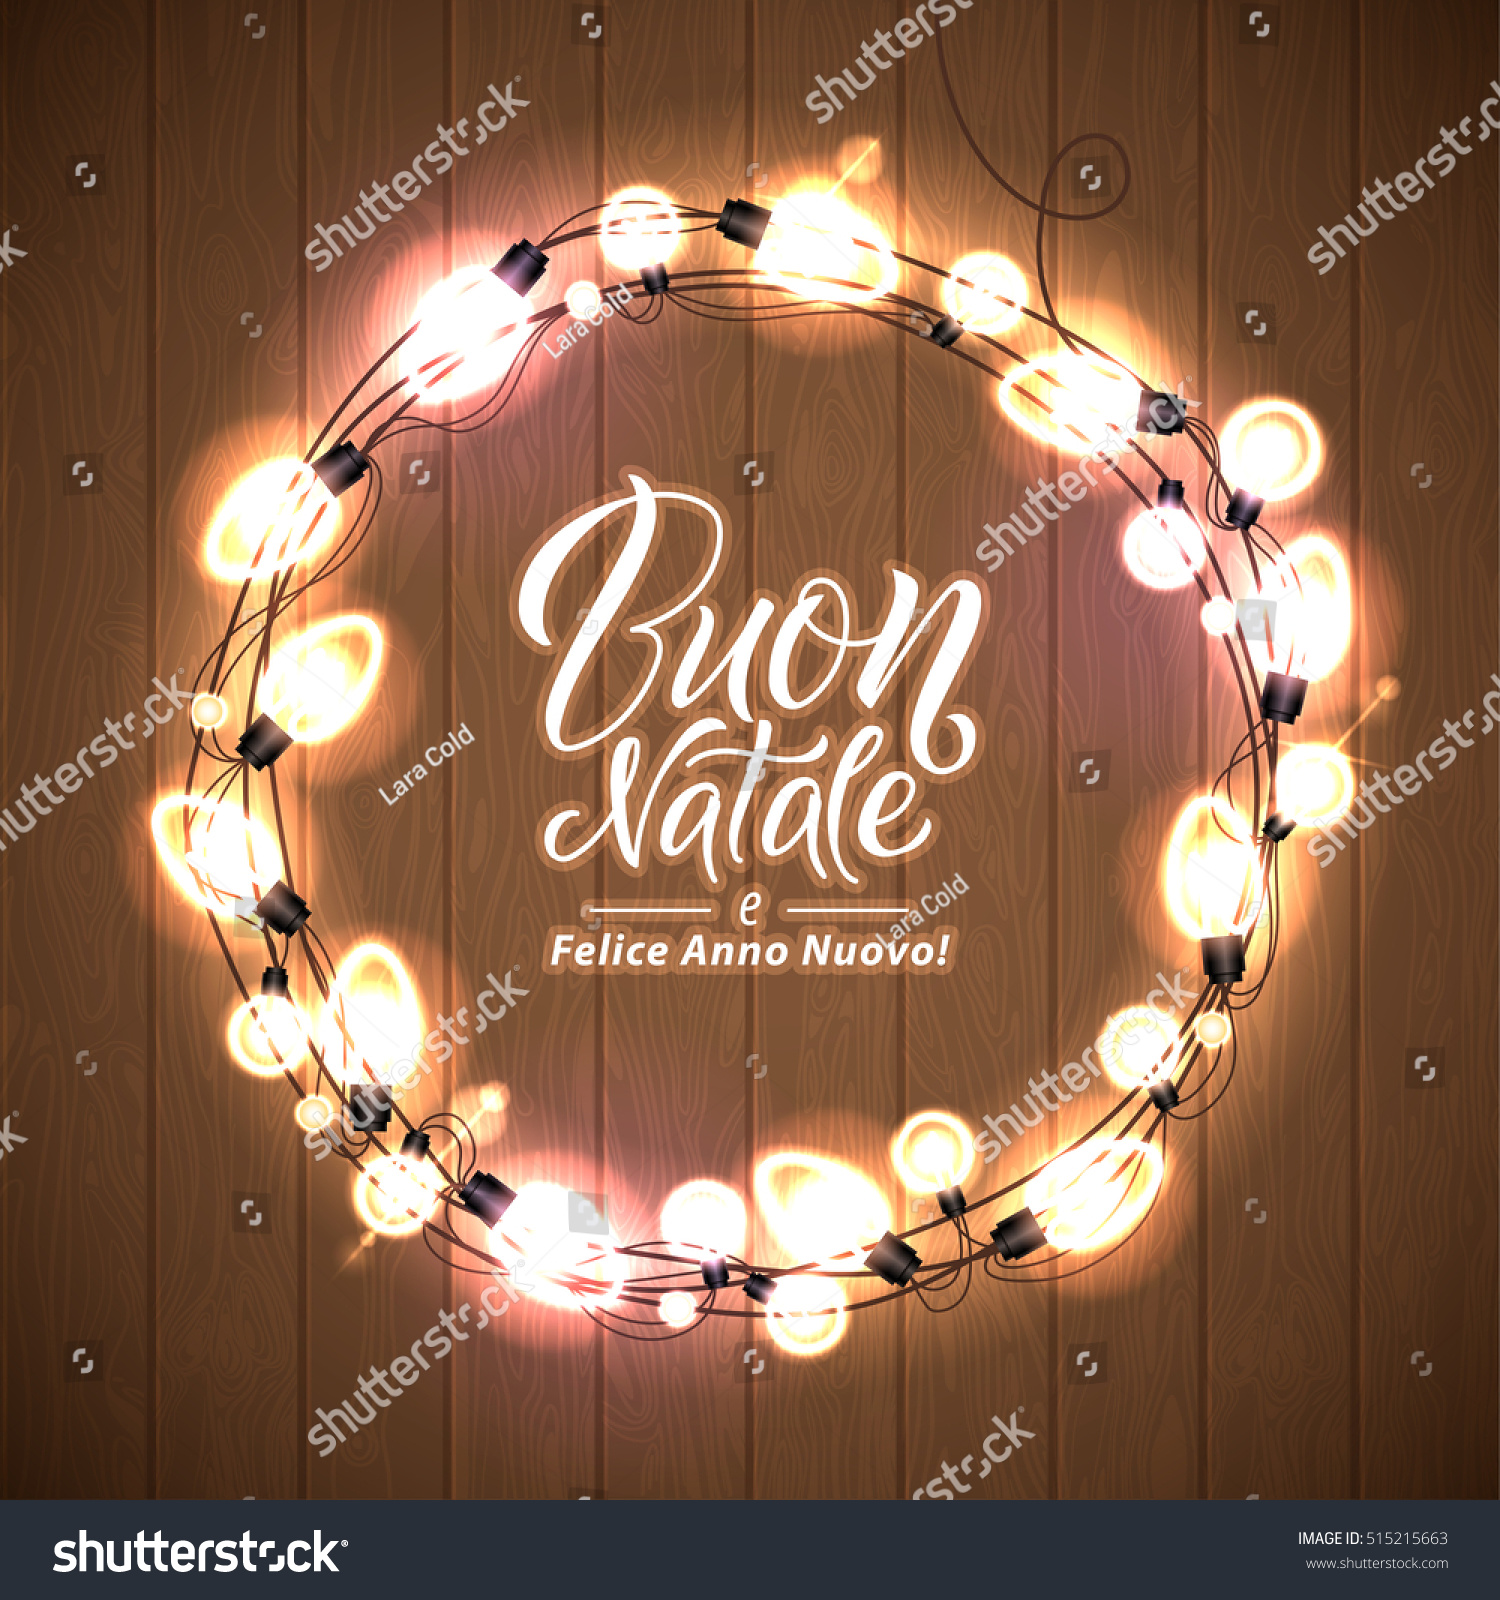 Merry christmas happy new year italian stock vector 515215663 merry christmas and happy new year italian language glowing christmas lights wreath for xmas kristyandbryce Gallery